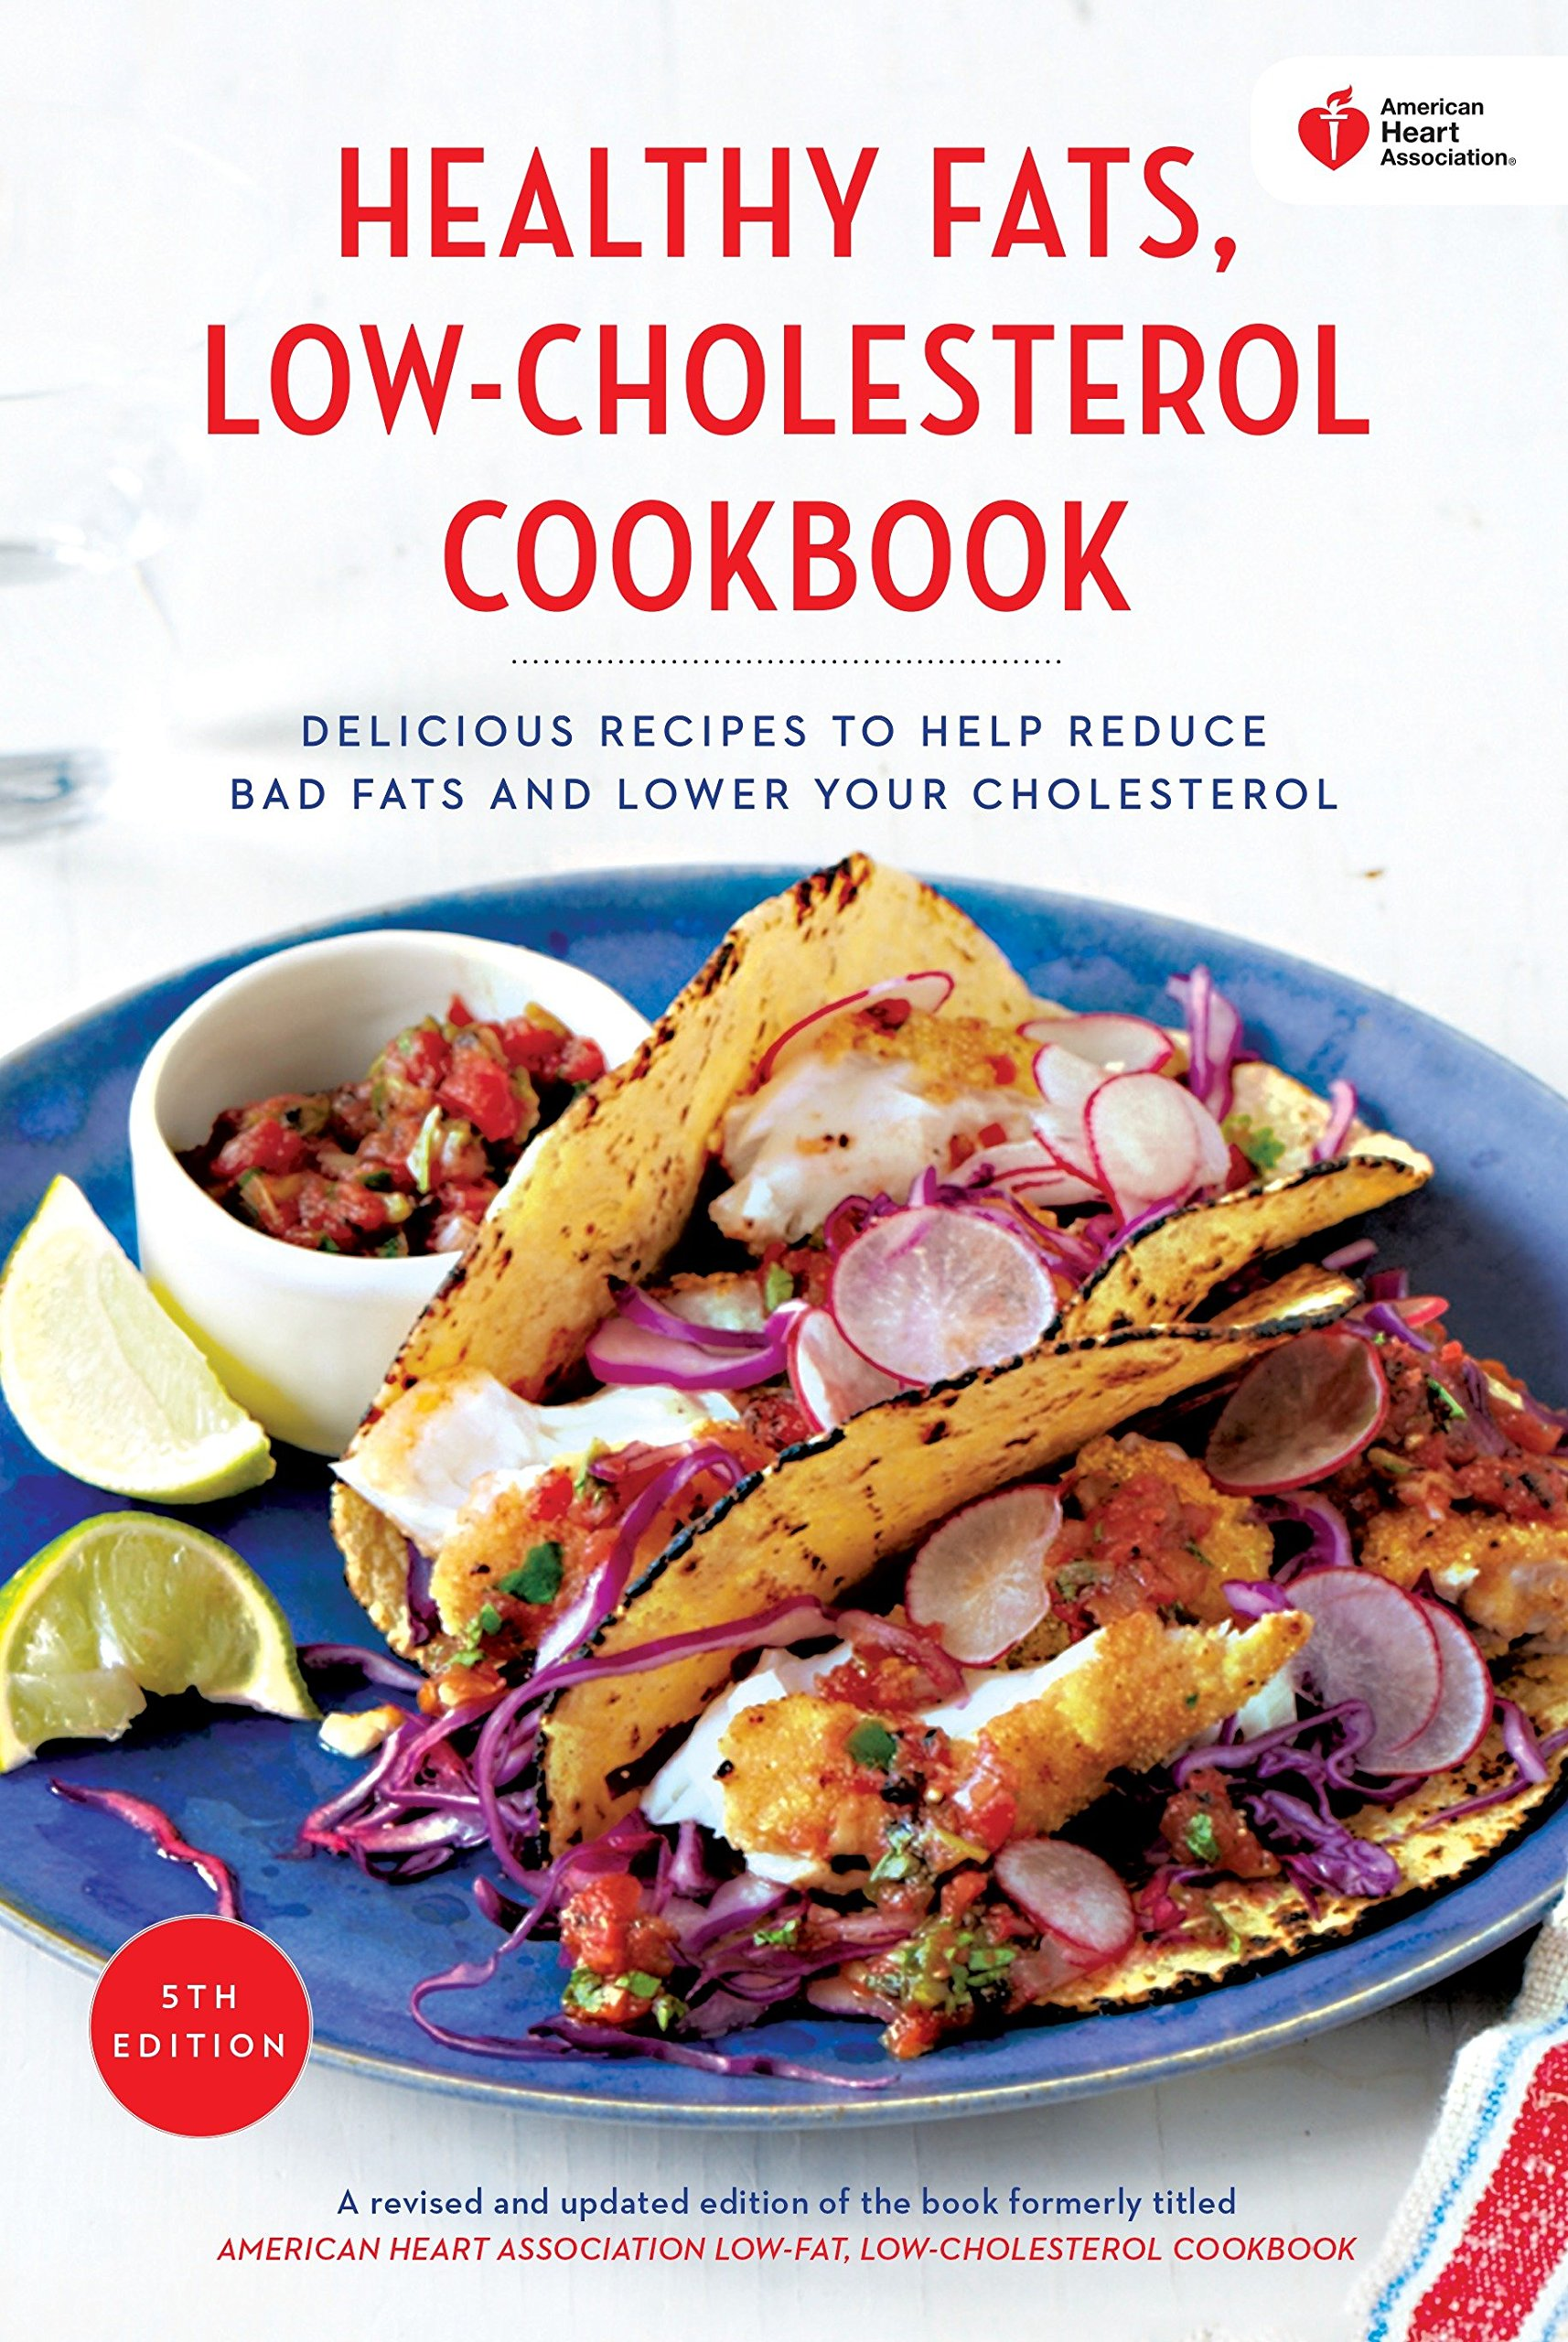 American heart association healthy fats low cholesterol cookbook american heart association healthy fats low cholesterol cookbook delicious recipes to help reduce bad fats and lower your cholesterol american heart forumfinder Choice Image